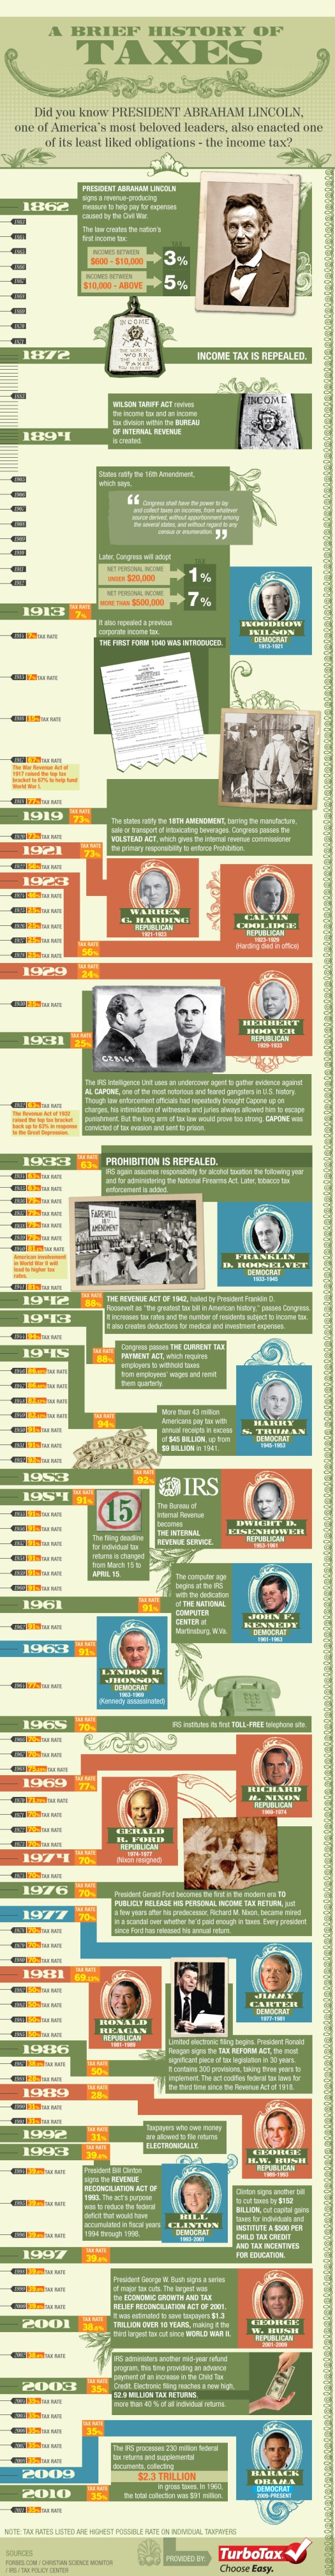 history-of-US-taxes-infographic-800